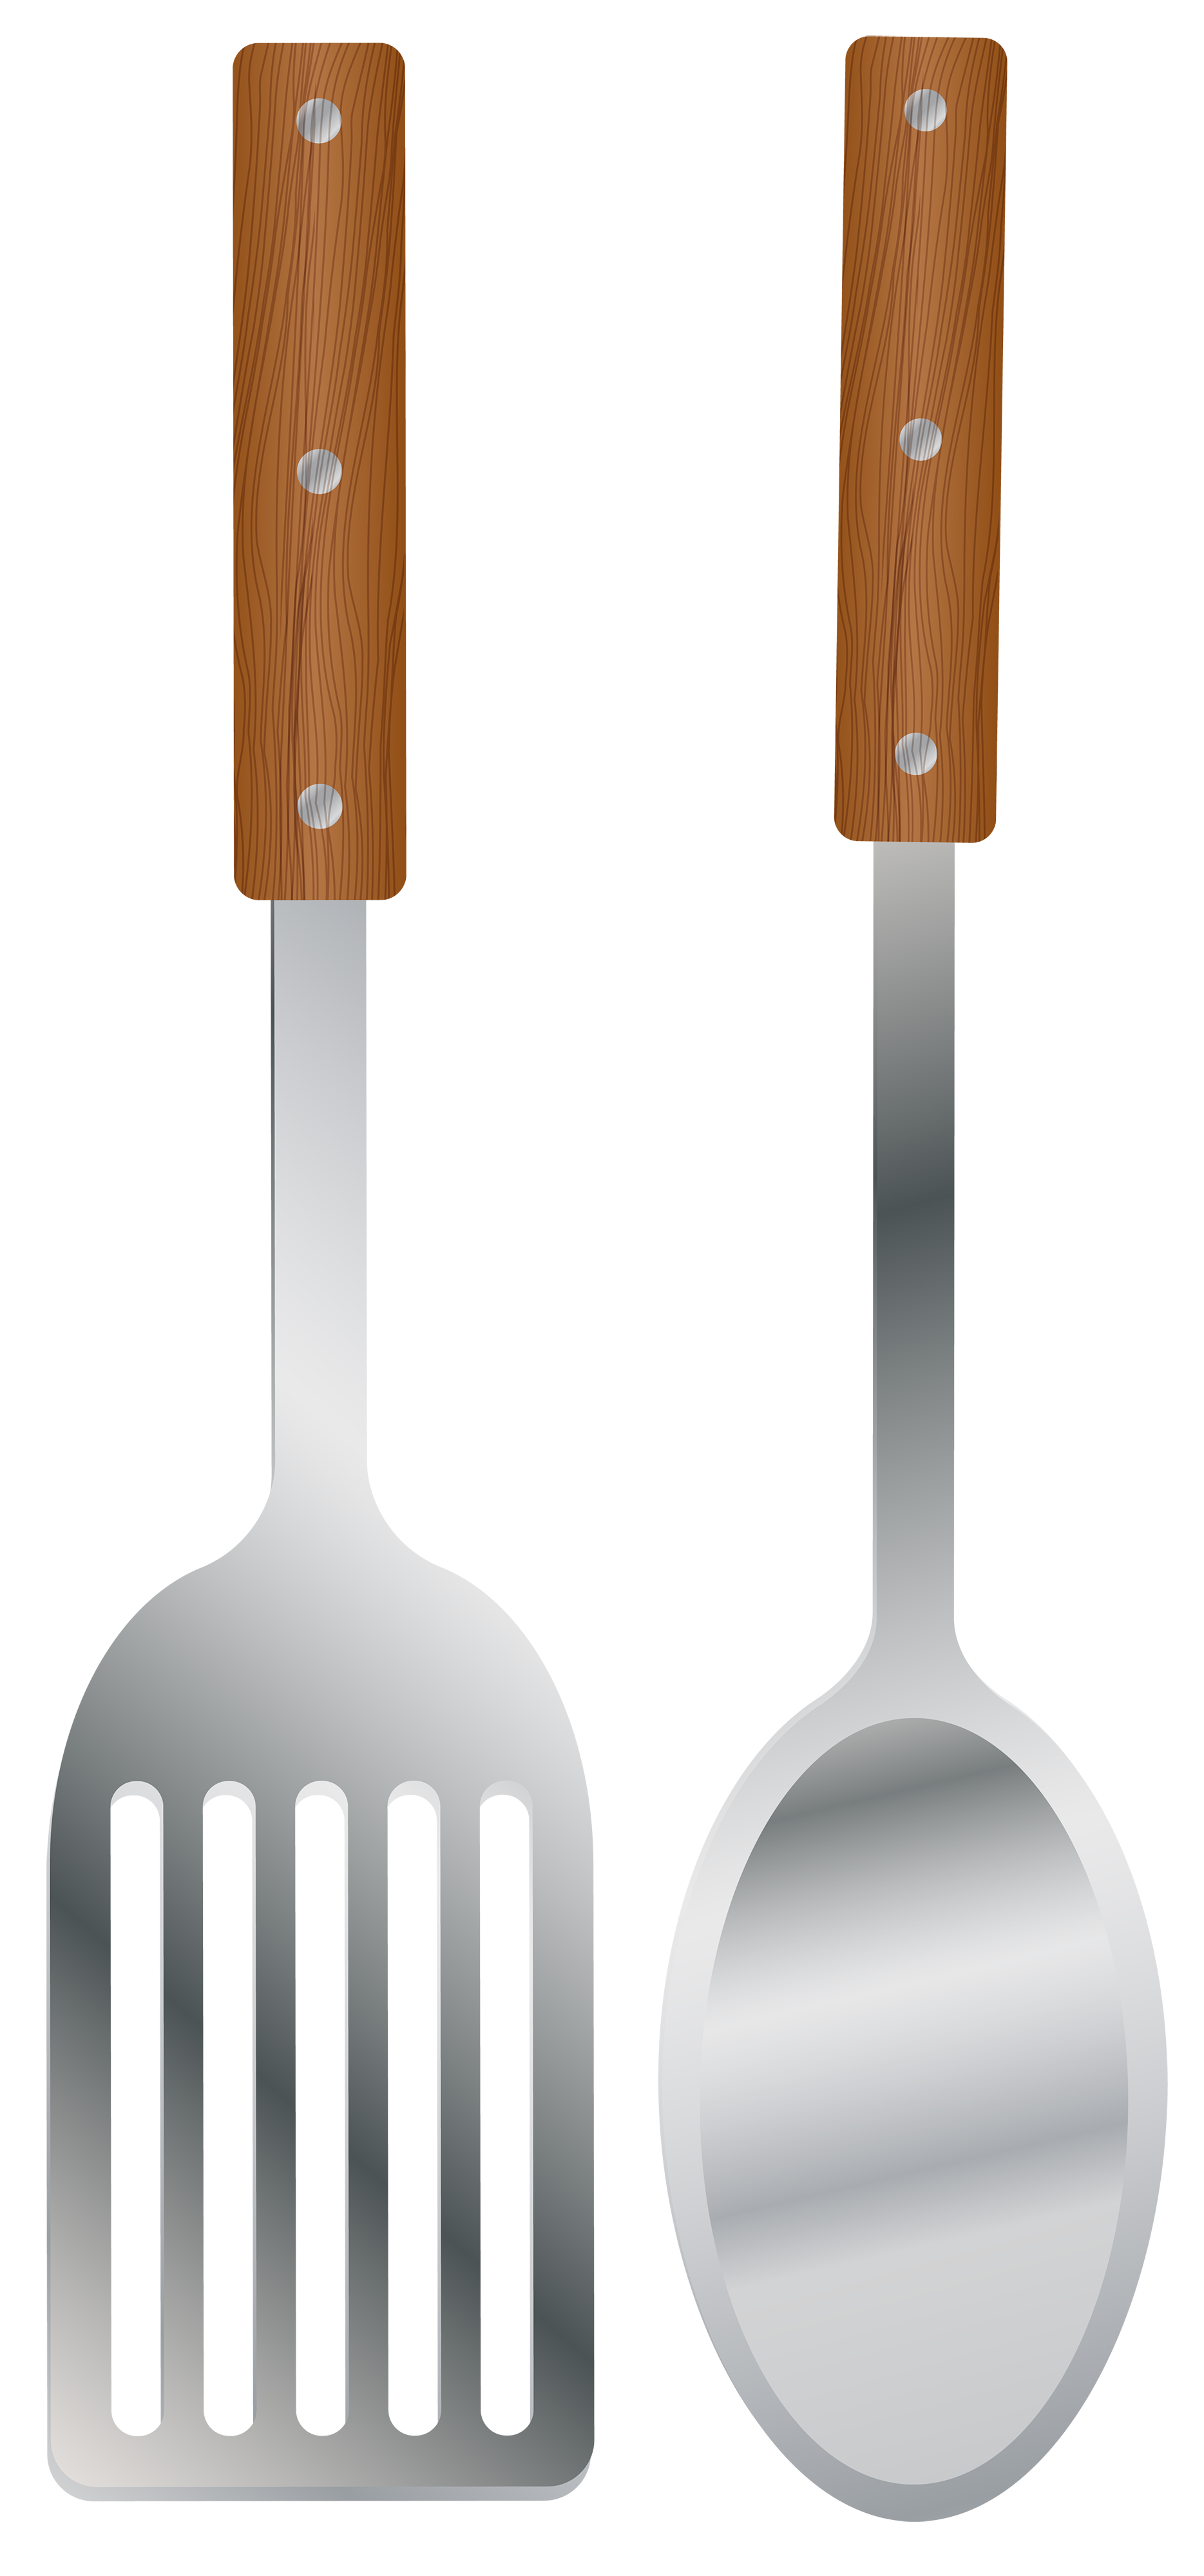 Spoon and png best. Spatula clipart kitchen spatula image stock